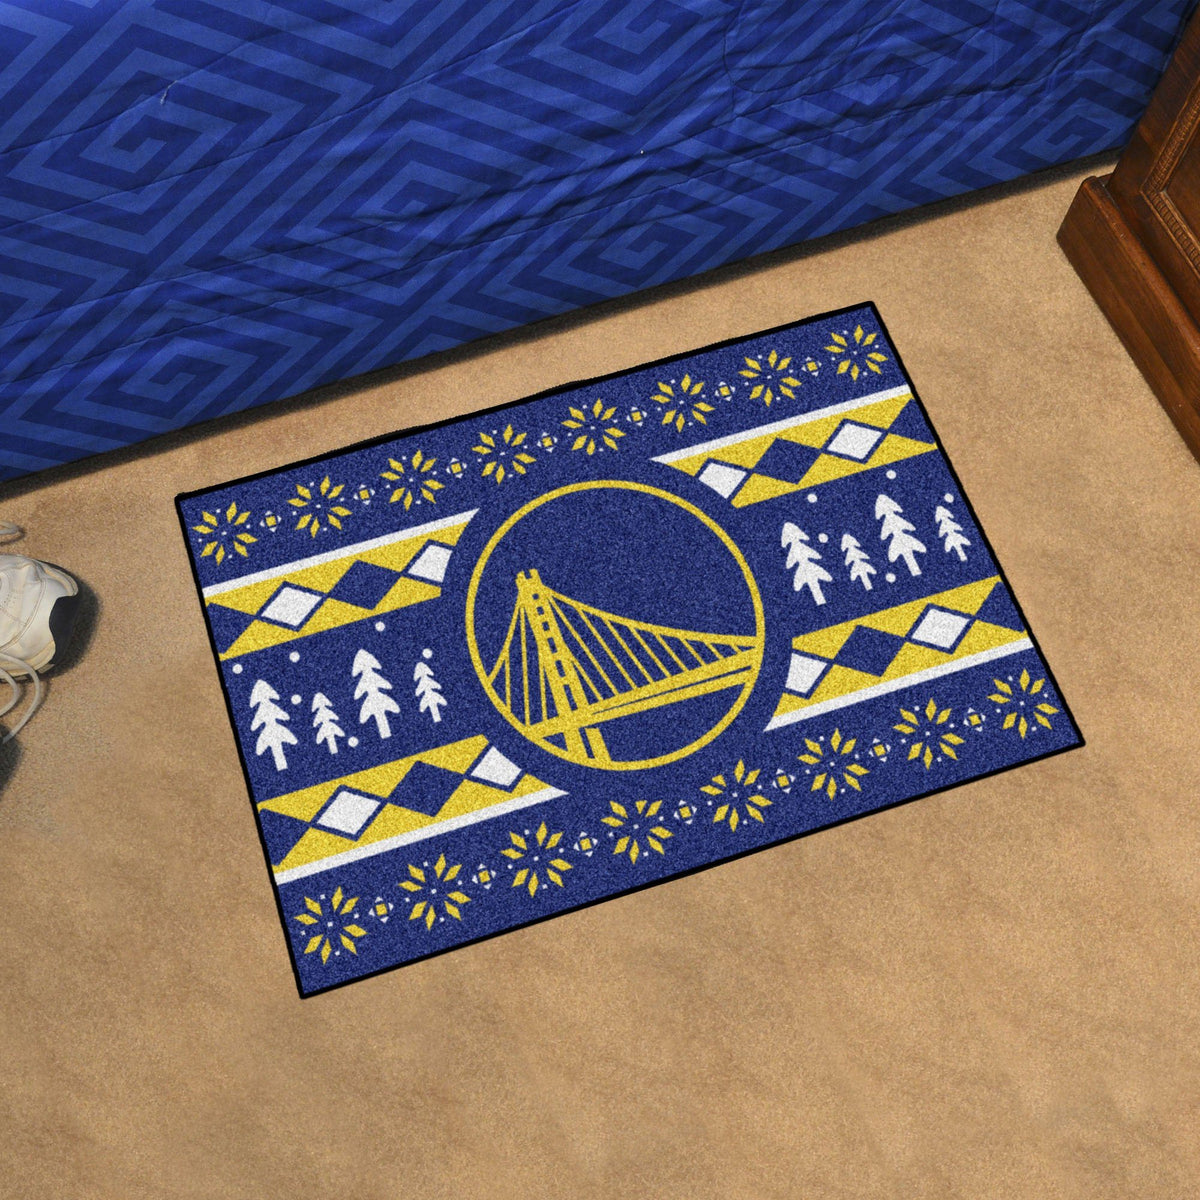 NBA - Holiday Sweater Starter Mat NBA Mats, Rectangular Mats, Holiday Sweater Starter Mat, NBA, Home Fan Mats Golden State Warriors